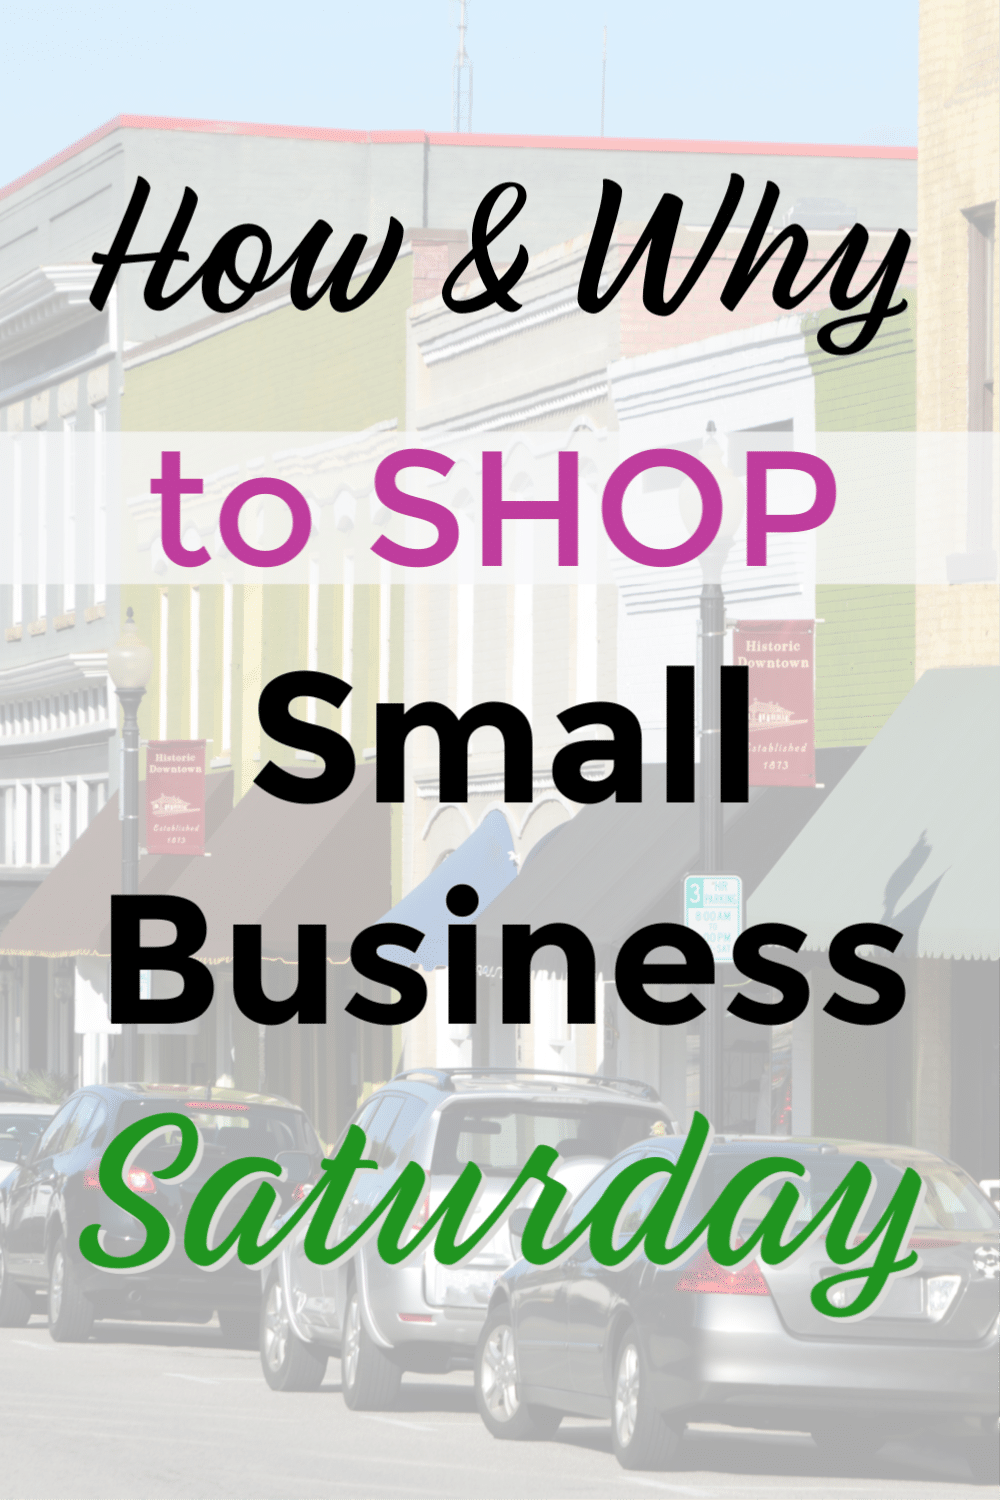 If you've been ignoring the days between Black Friday and Cyber Monday when holiday shopping, you're missing a big opportunity! Here are some good reasons you should be shopping on Small Business Saturday, plus helpful tips to save you time and find the best deals. #holidayshopping #smallbusinesssaturday #shoplocal via @wondermomwannab